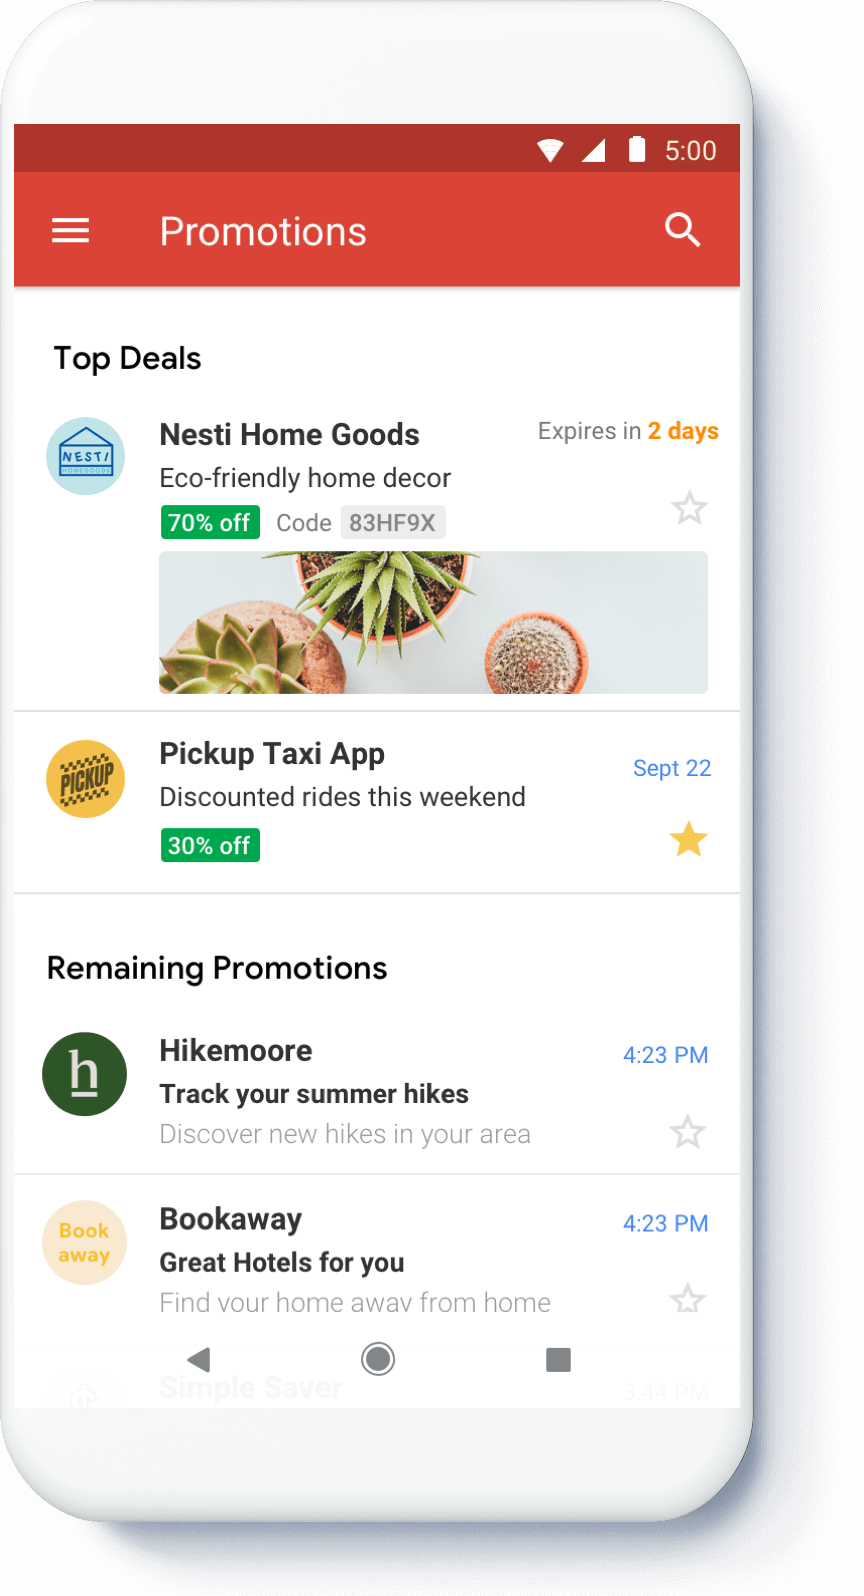 Mobile Gmail Promotions Tab - Email Annotations